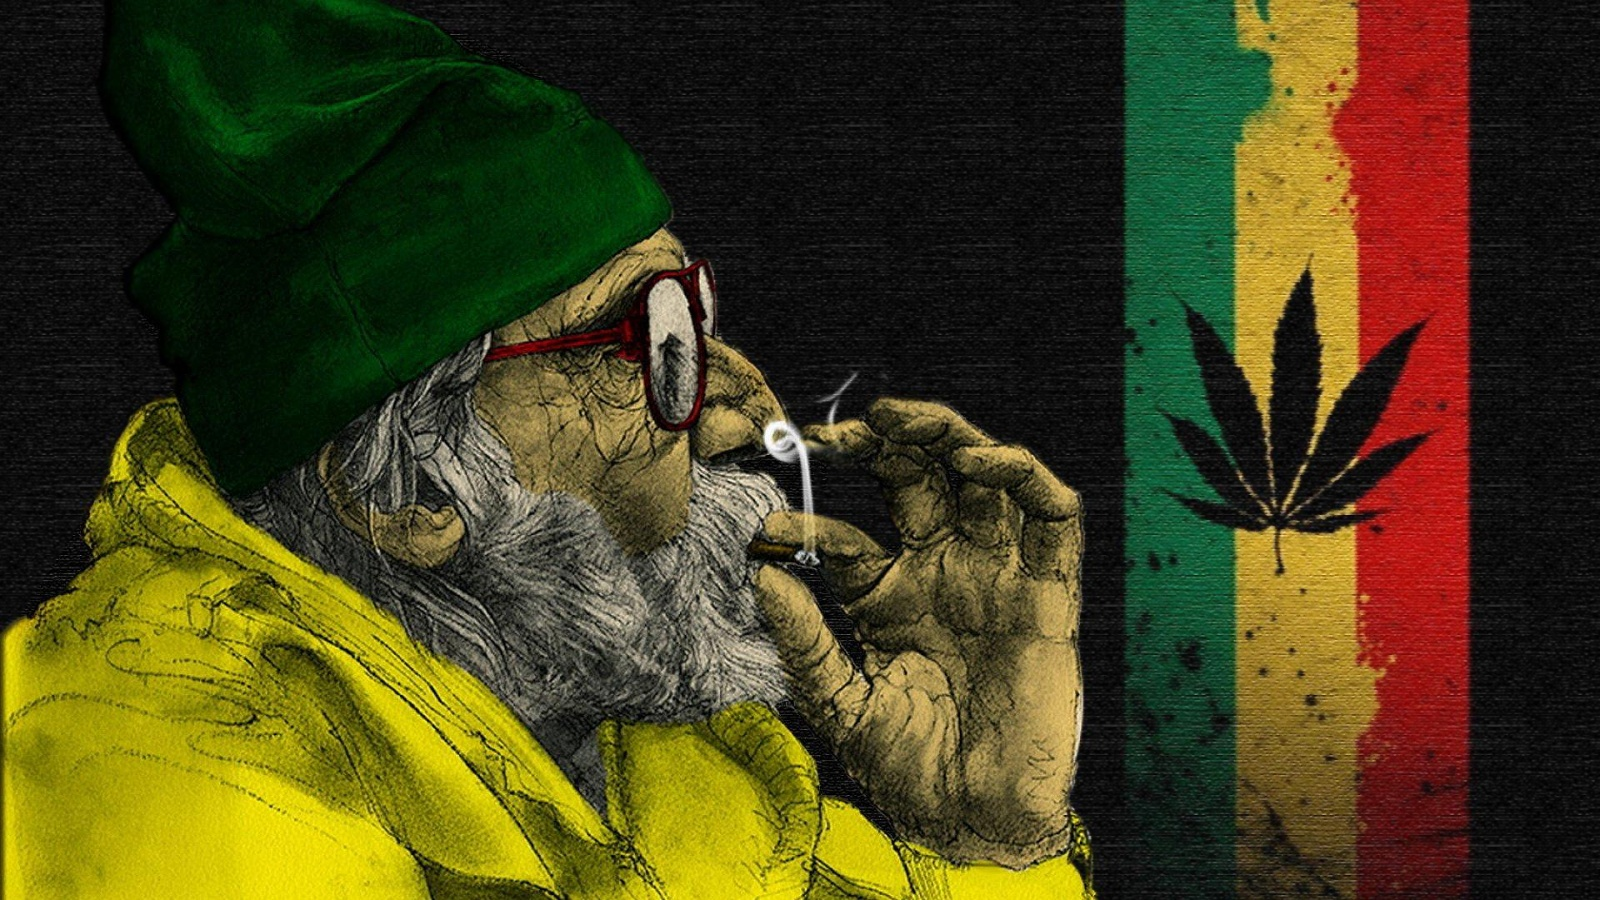 Description: The Wallpaper above is Jamaica ganja weed man Wallpaper in Resolution 1600x900. Choose your Resolution and Download Jamaica ganja weed man ...